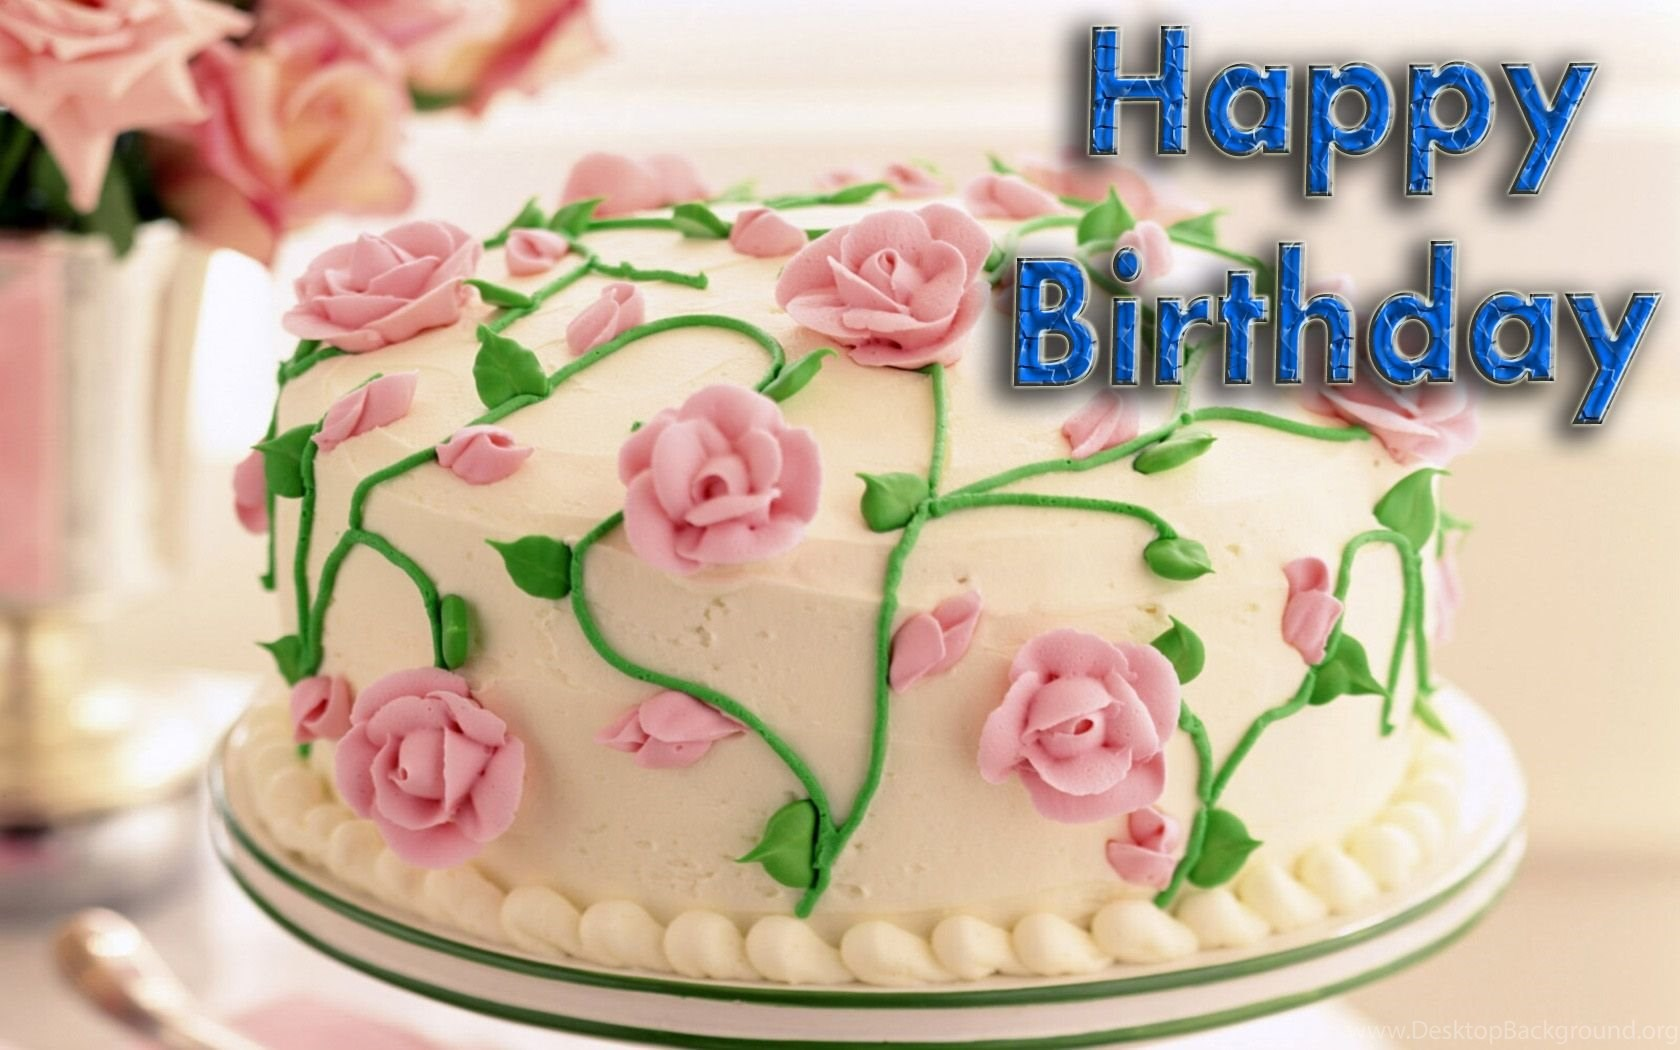 birthday cake high quality hd wallpapers and images desktop background